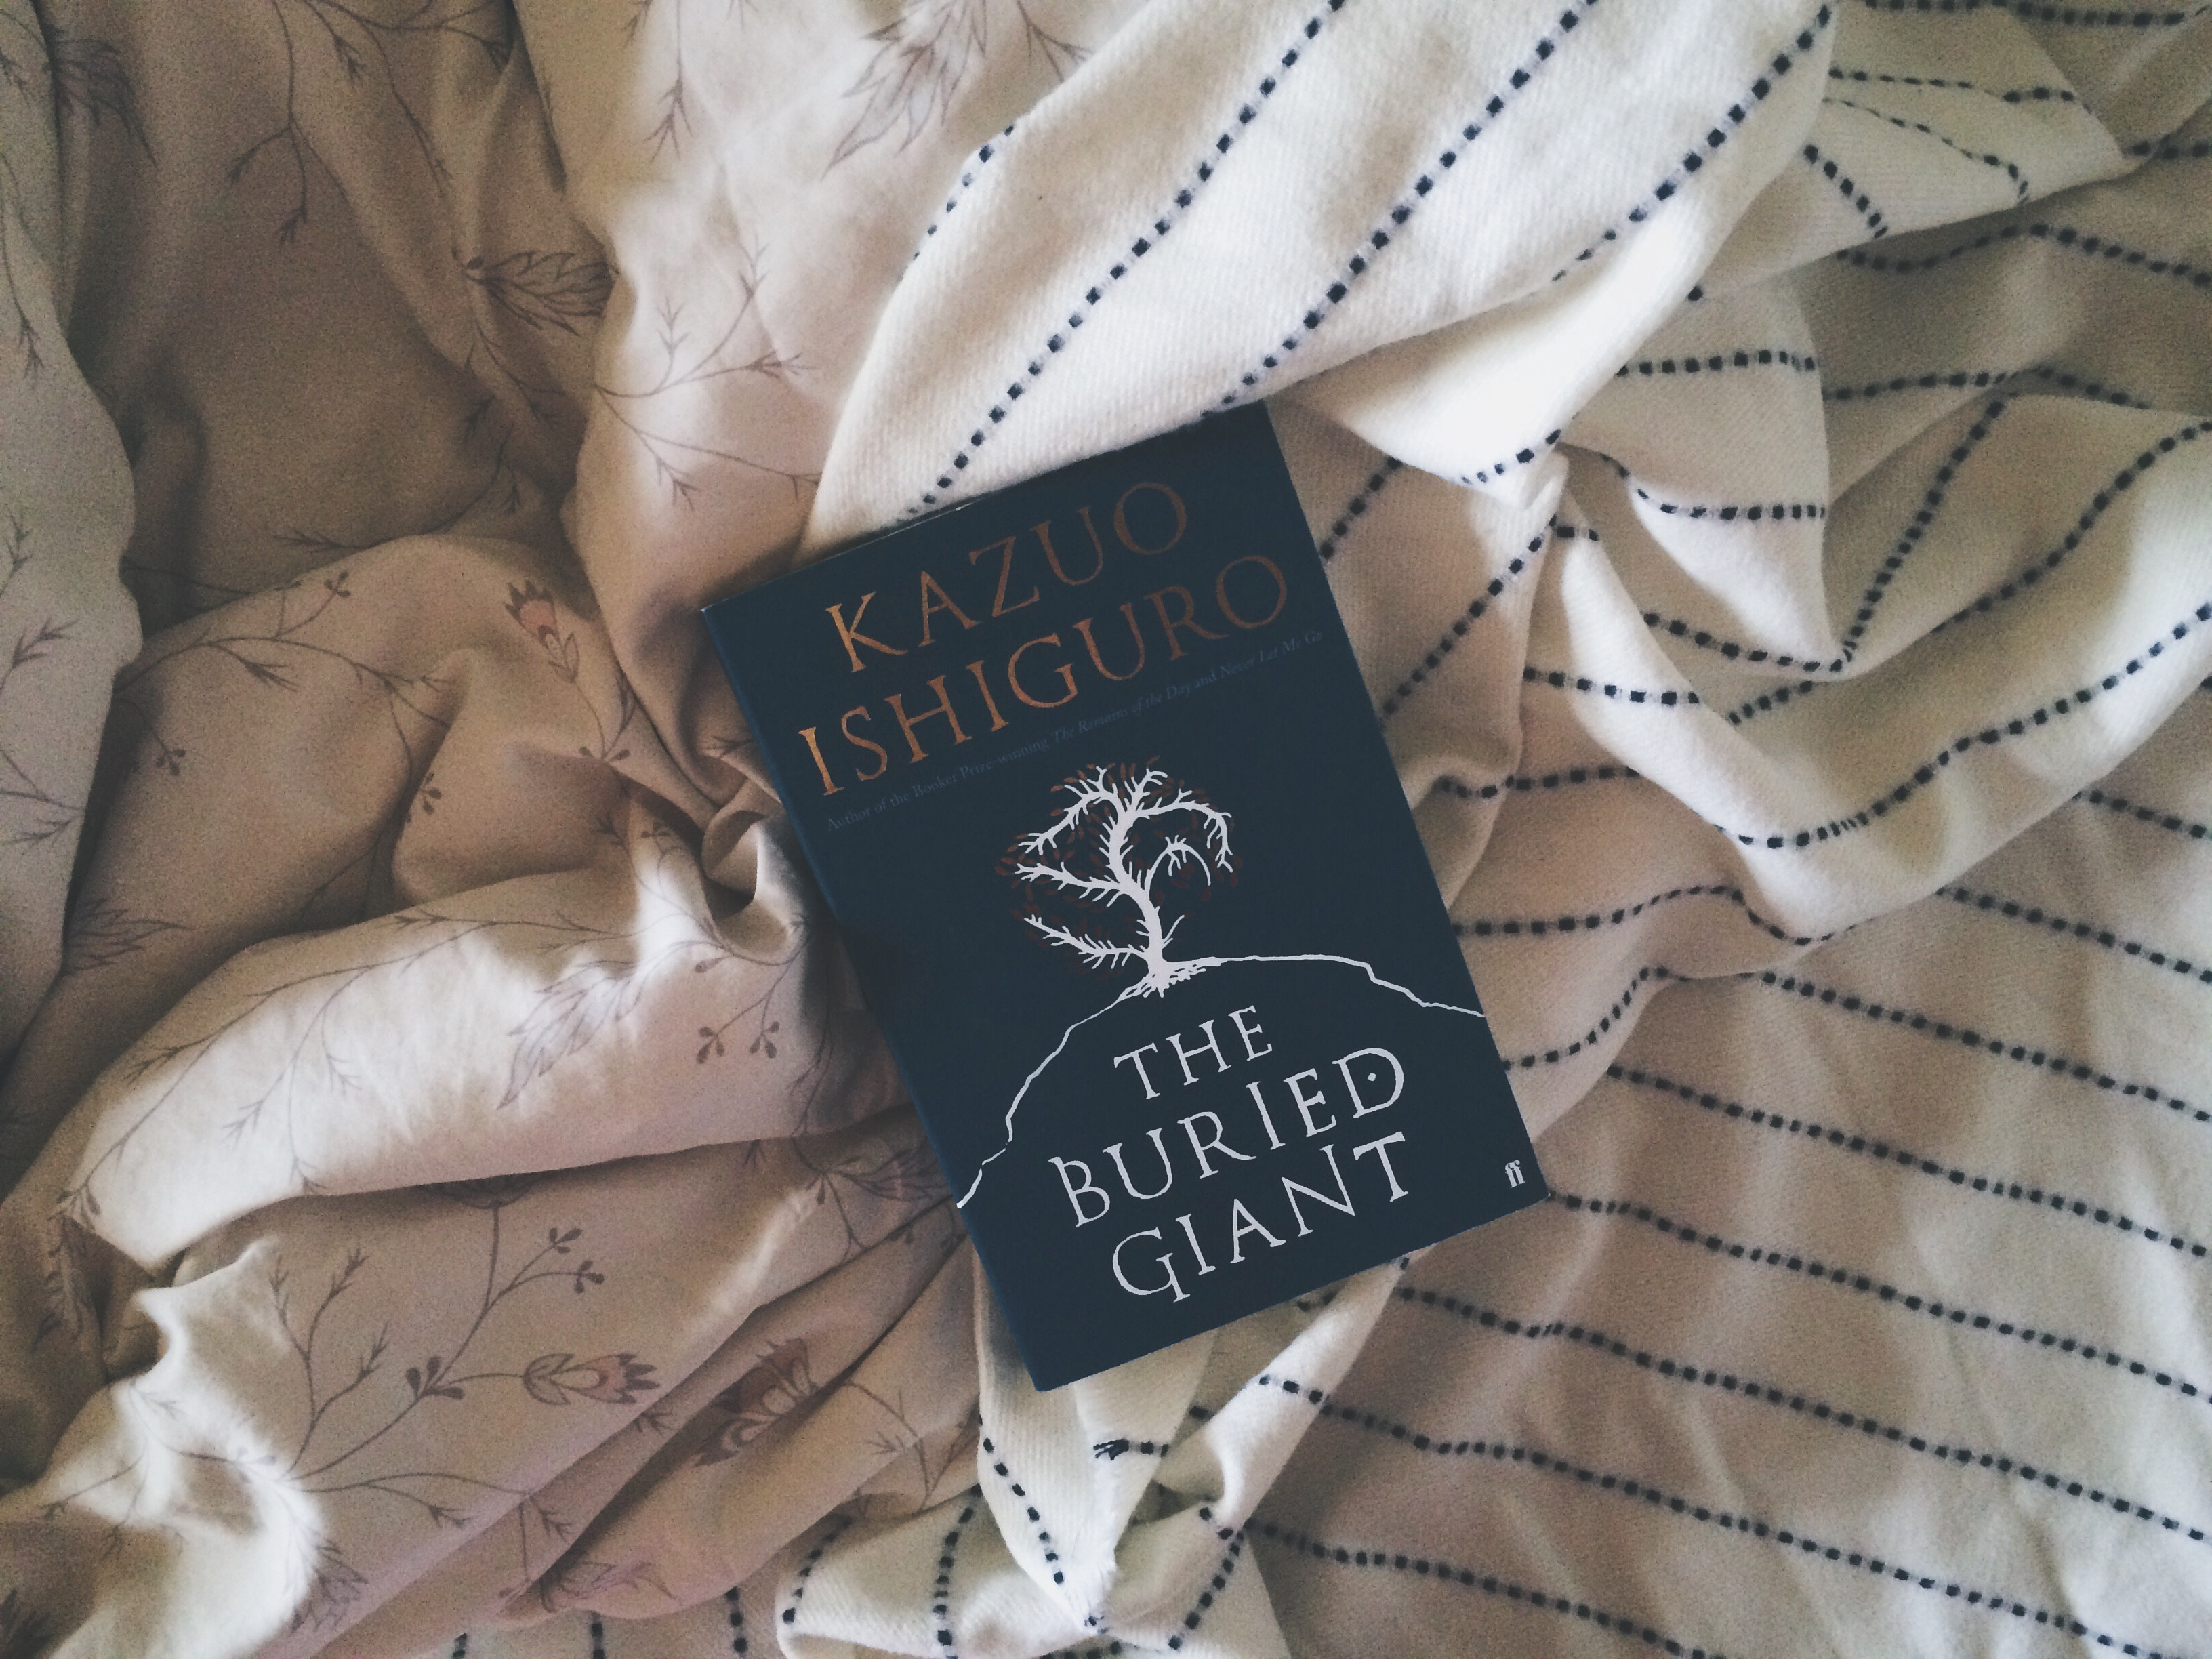 Kazuo Ishiguro, The Buried Giant, Book, Bramble and Thorn